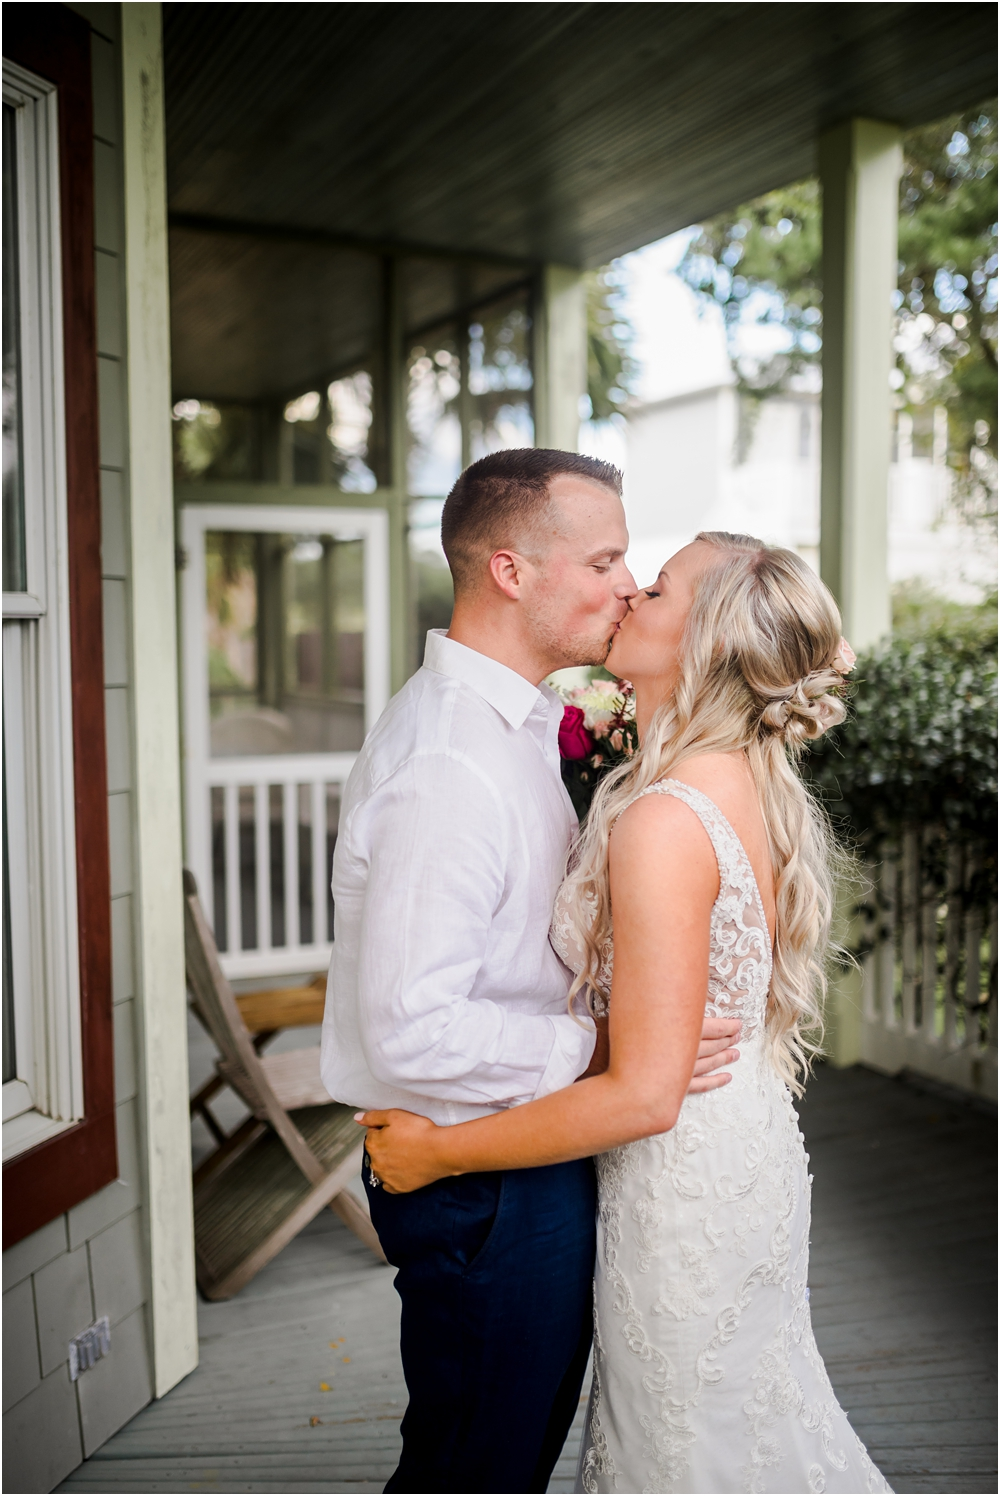 mcglothlin-wedding-kiersten-stevenson-photography-30a-panama-city-beach-dothan-tallahassee-(49-of-145).jpg